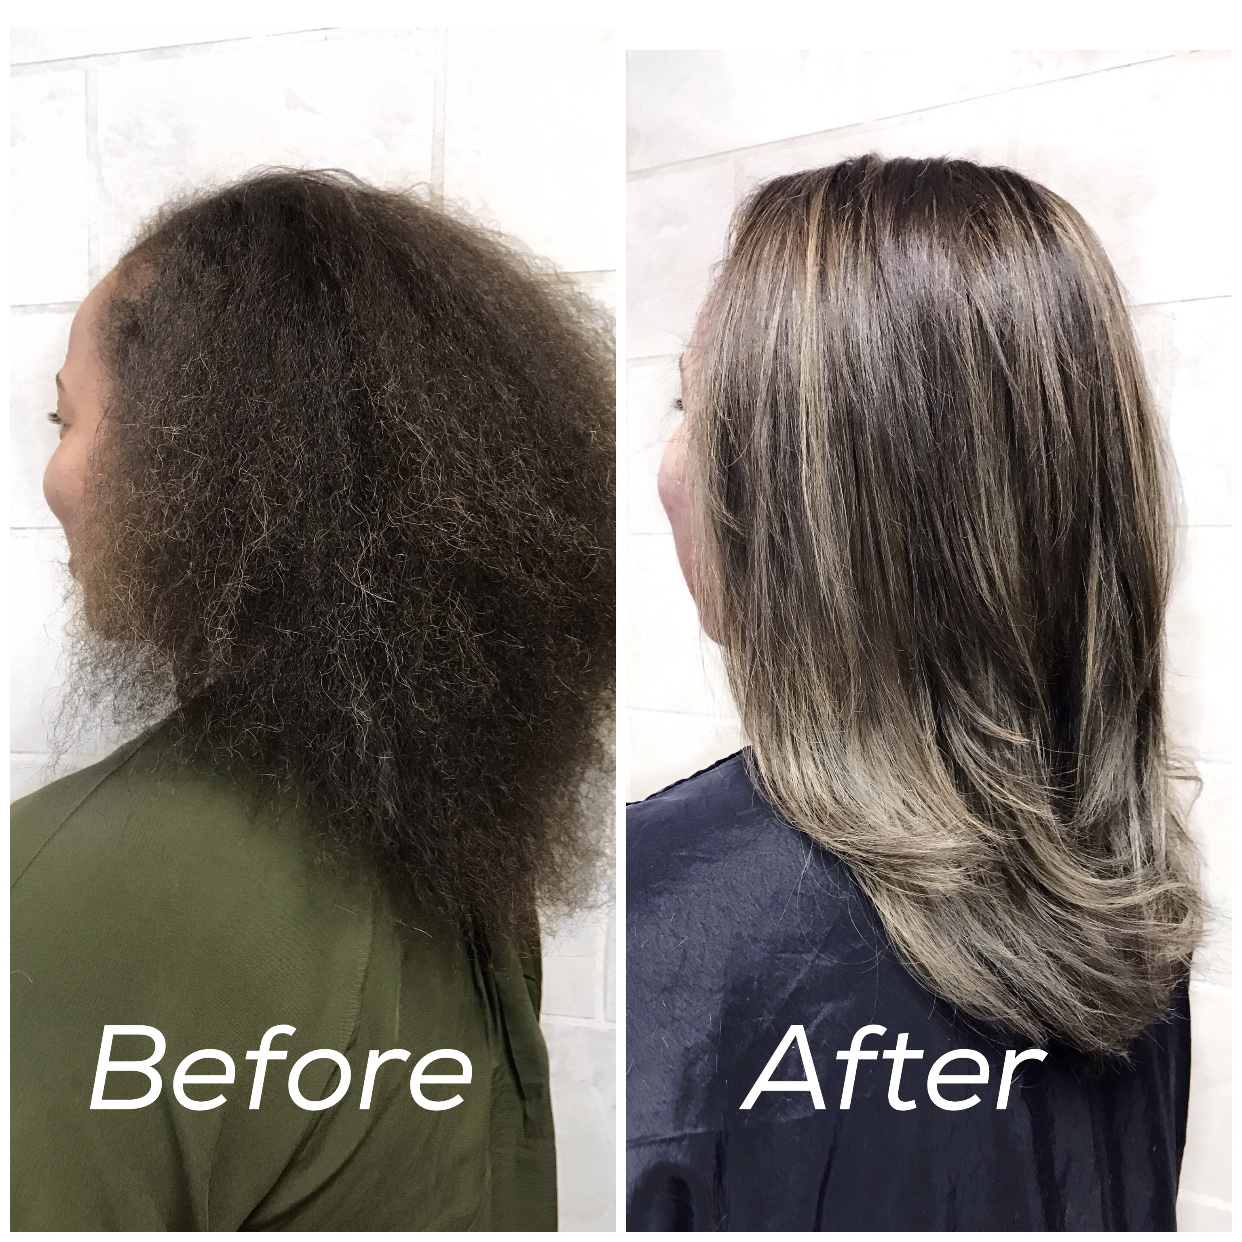 african american hair salon ballantyne, 90 degrees salon, curly hair expert ballantyne, Charlotte Hair colorists, Ballantyne salon, deva curl salon charlotte, natural hair salon ballantyne, best hair stylist in Charlotte, Balayage charlotte,